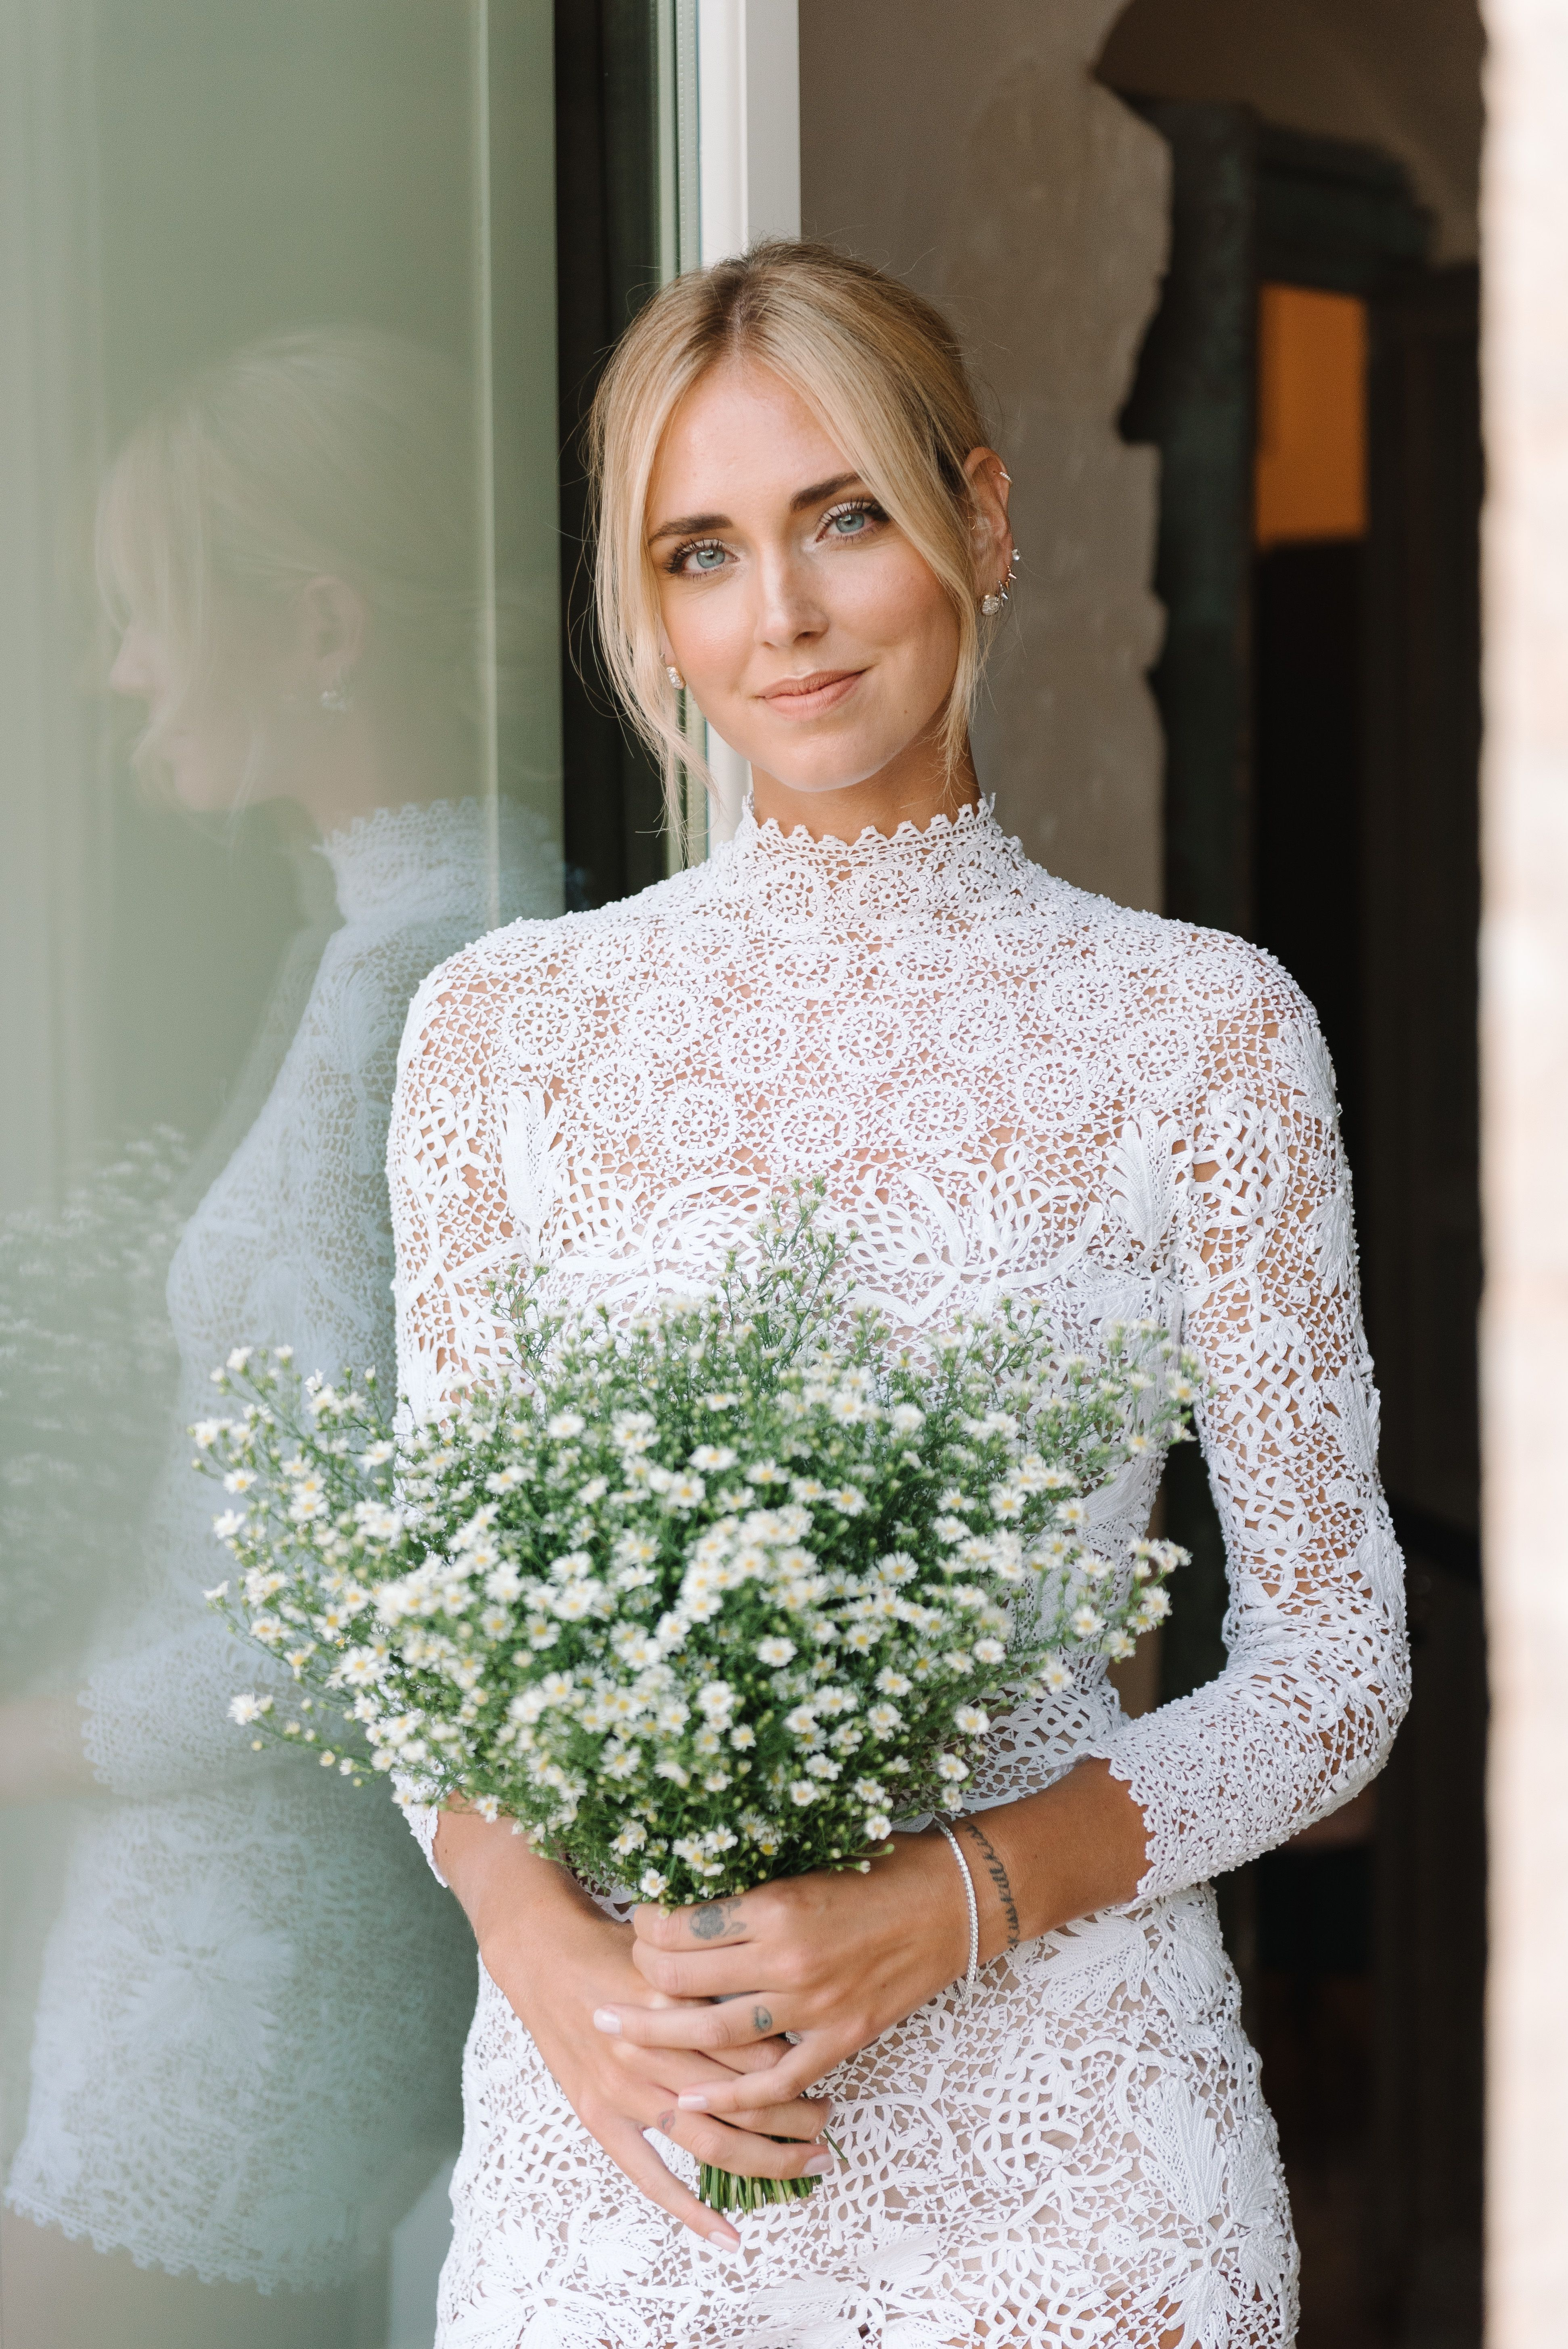 Congratulations To The Beautiful Bride And Lancôme Muse Chiara Ferragni What A Spectacular Wedding Bridal Makeup Look By Lancome Featuring L Absolu Rouge